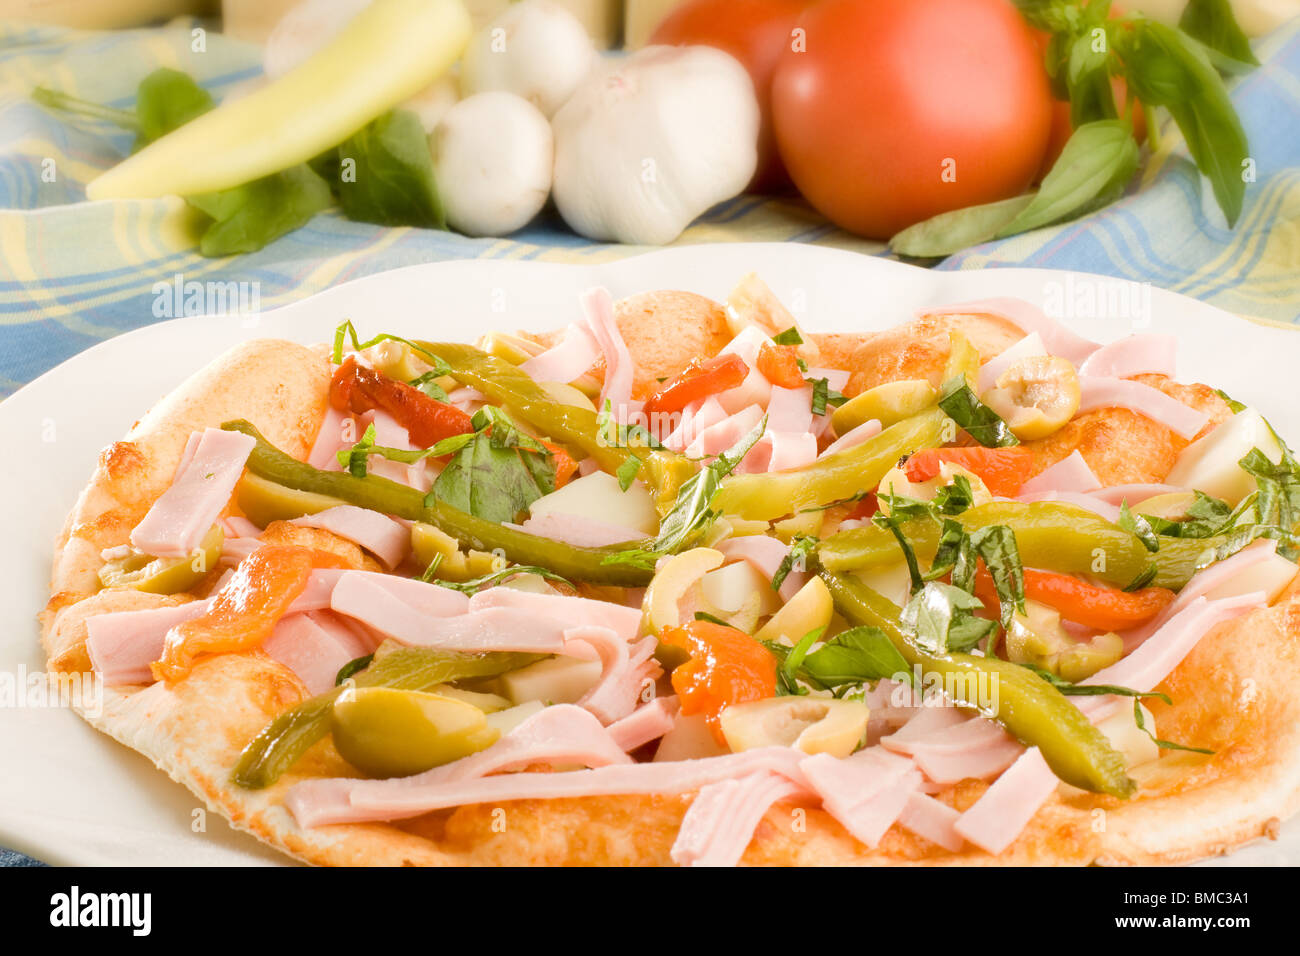 Pizza au jambon, olives et poivron capsicum Photo Stock